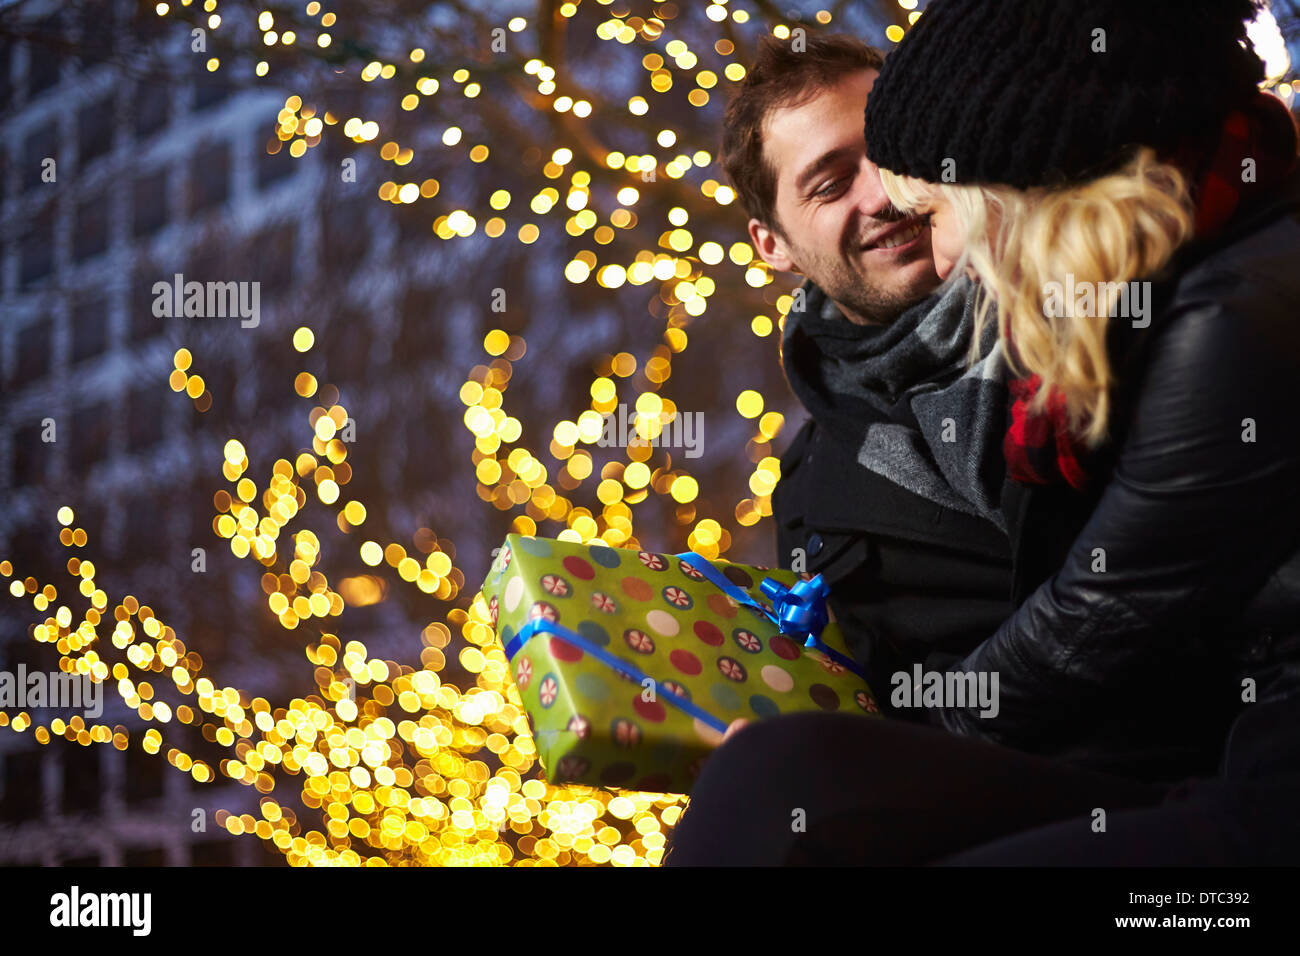 Young couple exchanging gifts next to outdoor xmas lights - Stock Image